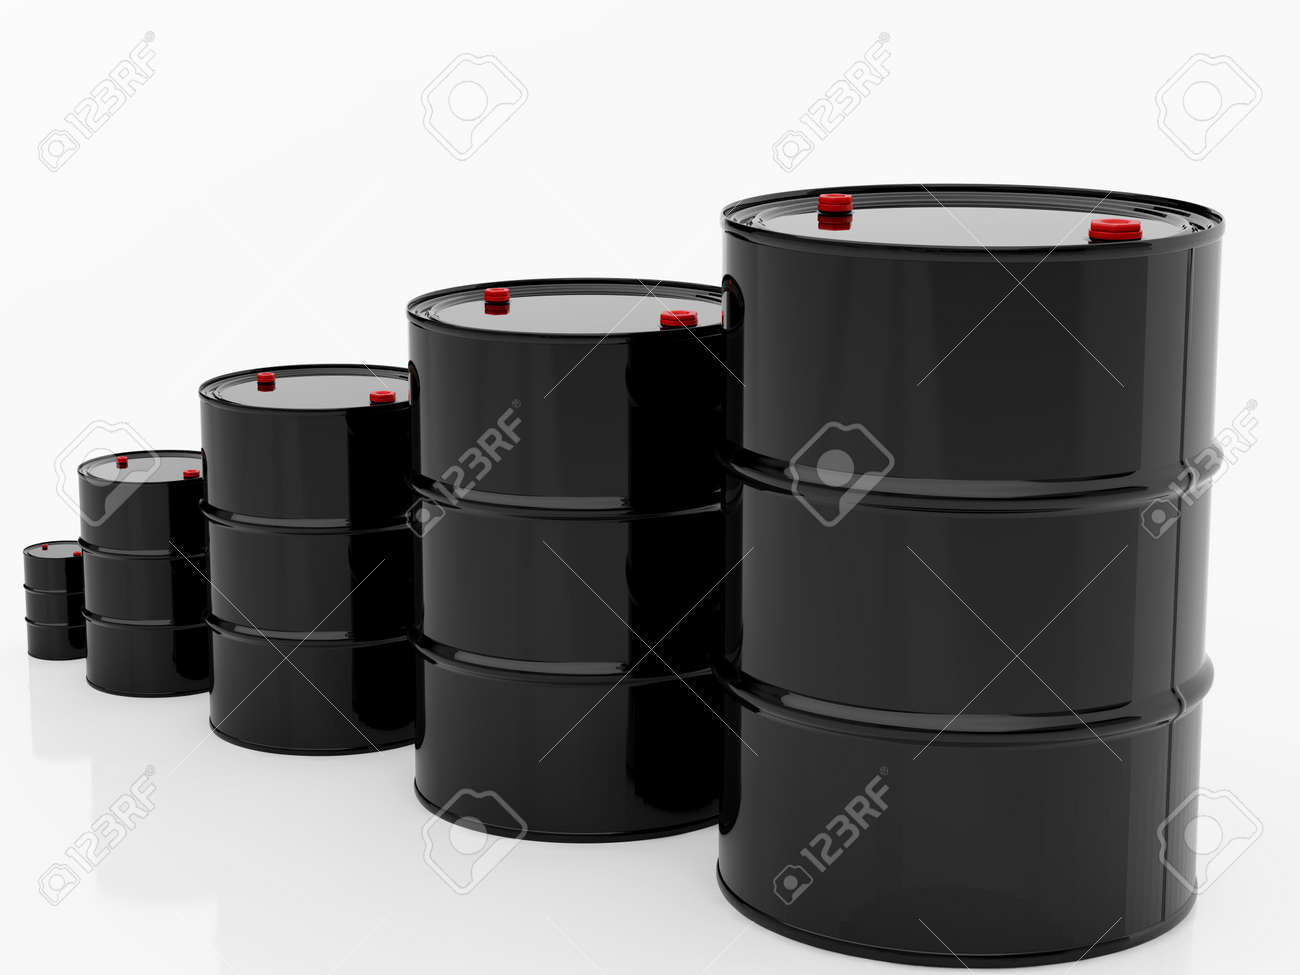 High resolution image barrel. 3d illustration over  white backgrounds. Stock Photo - 3459381